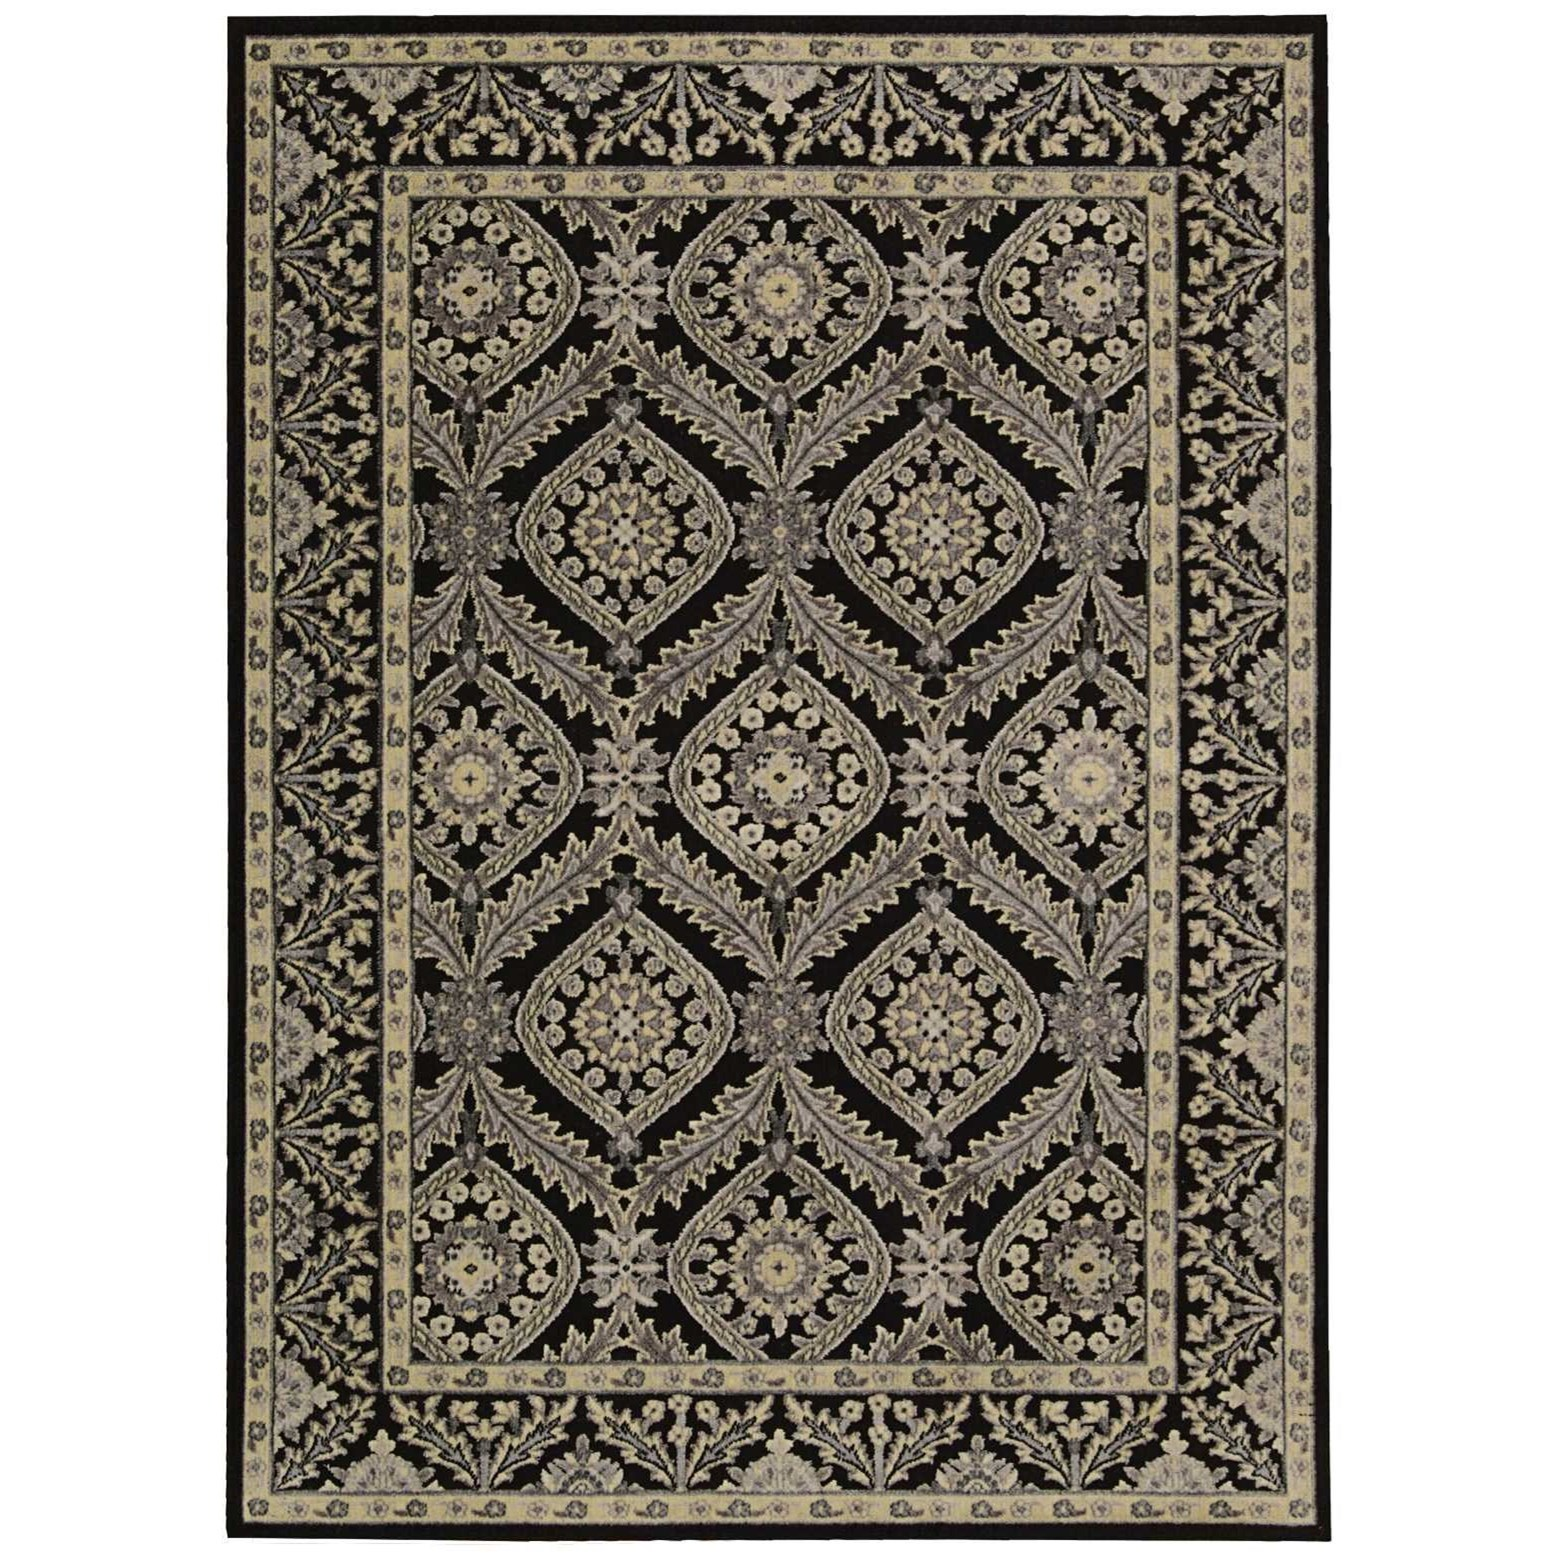 "5'3"" x 7'5"" Black Rectangle Rug"